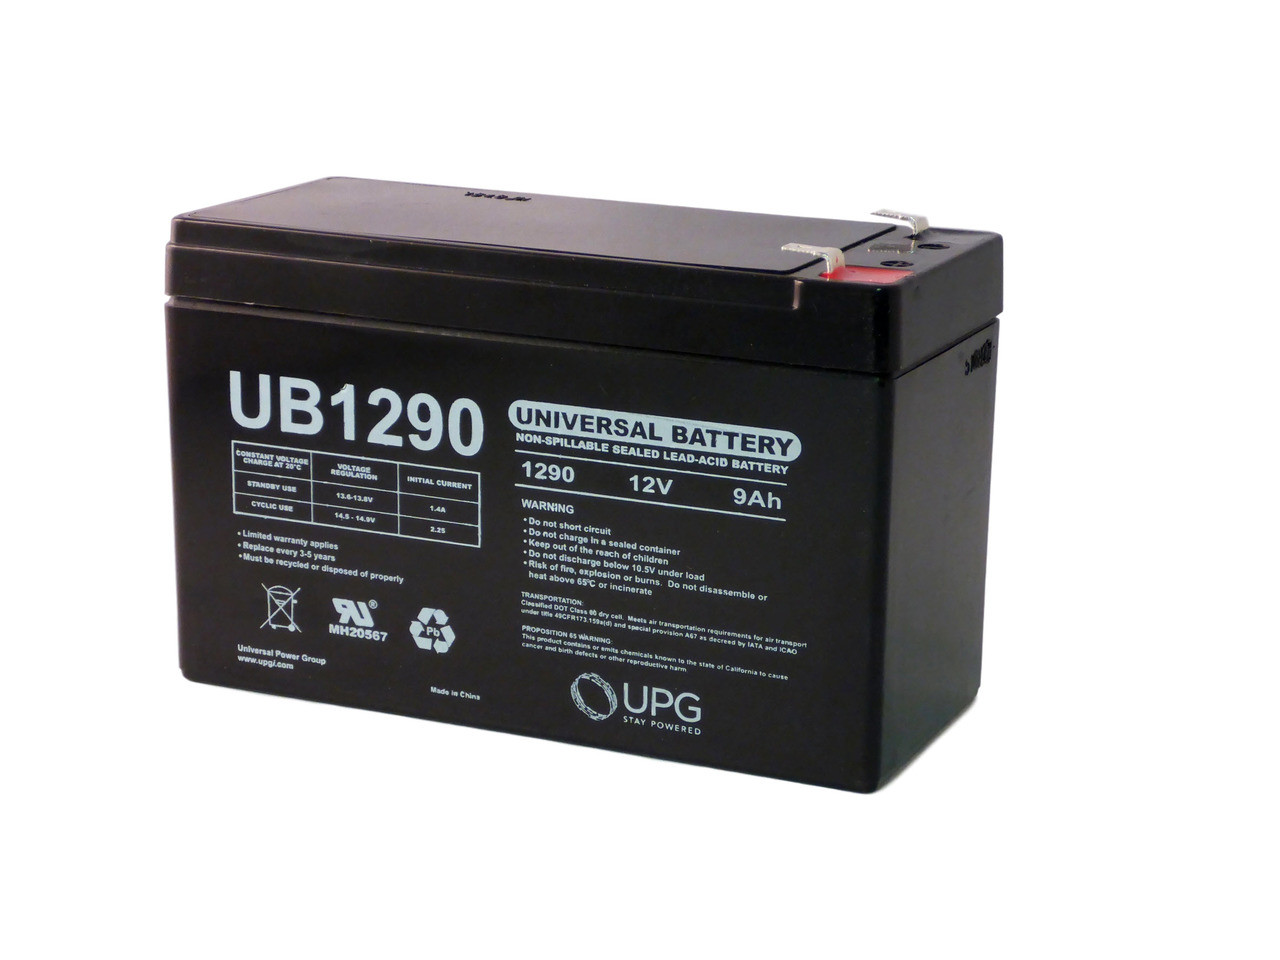 Rechargeable, high Rate Hewlett-Packard T1500XR Replacement Battery Pack